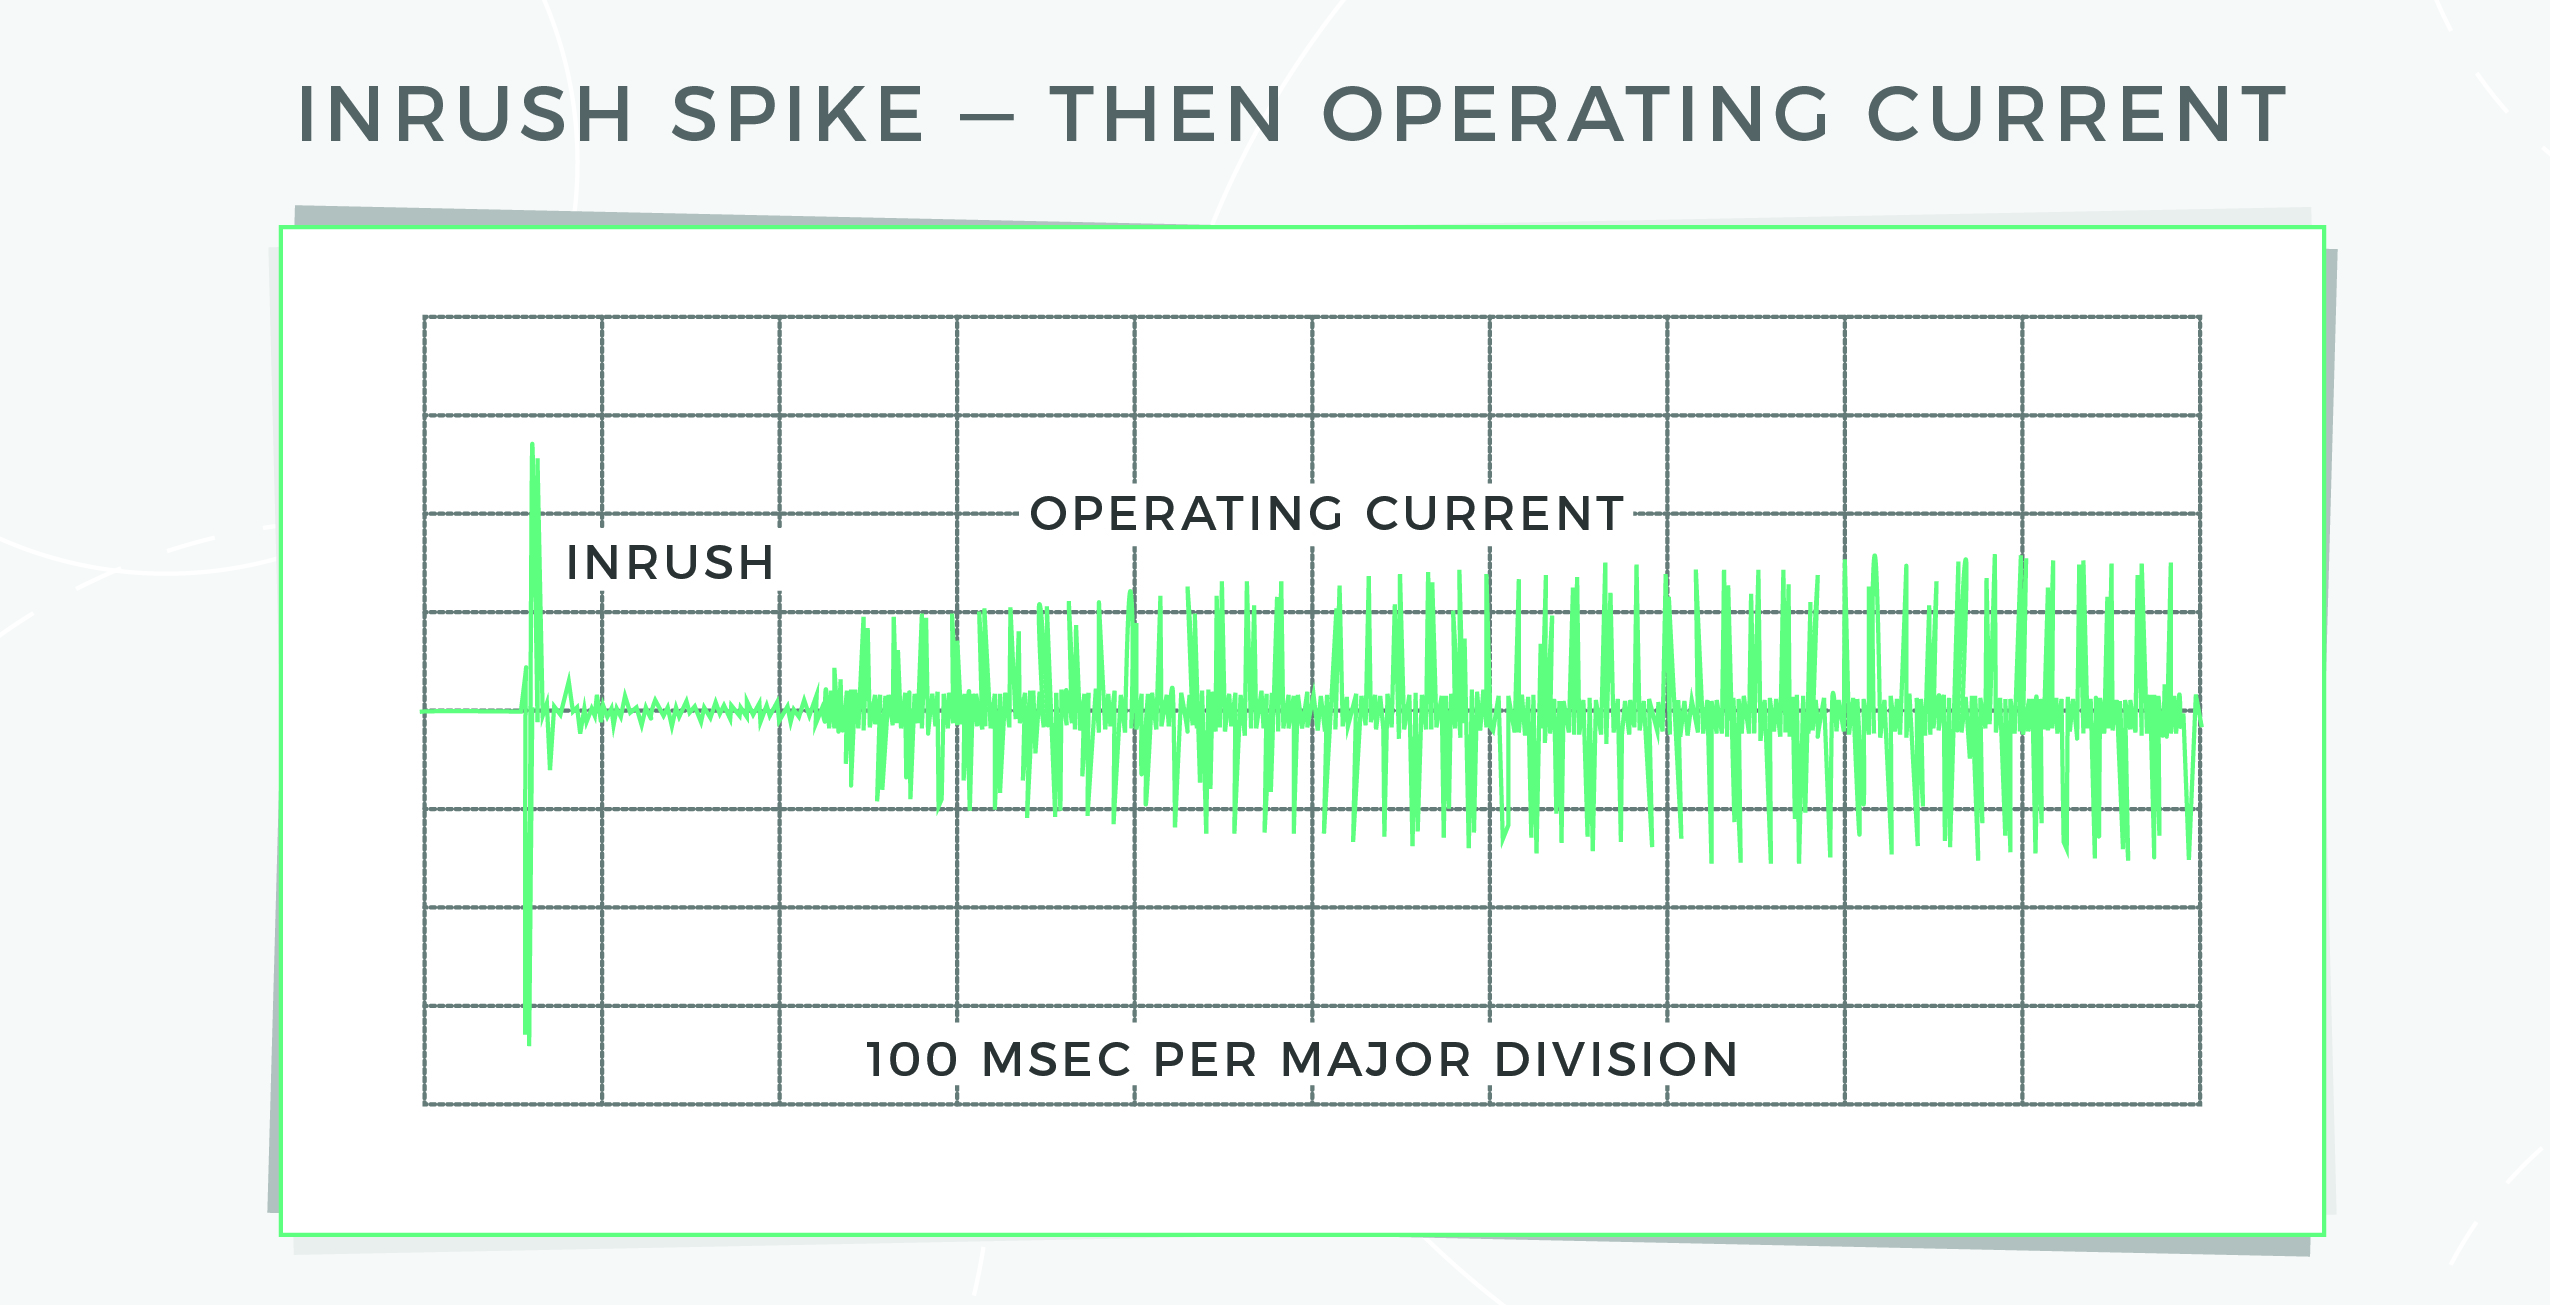 Inrush spike, then operating current graph